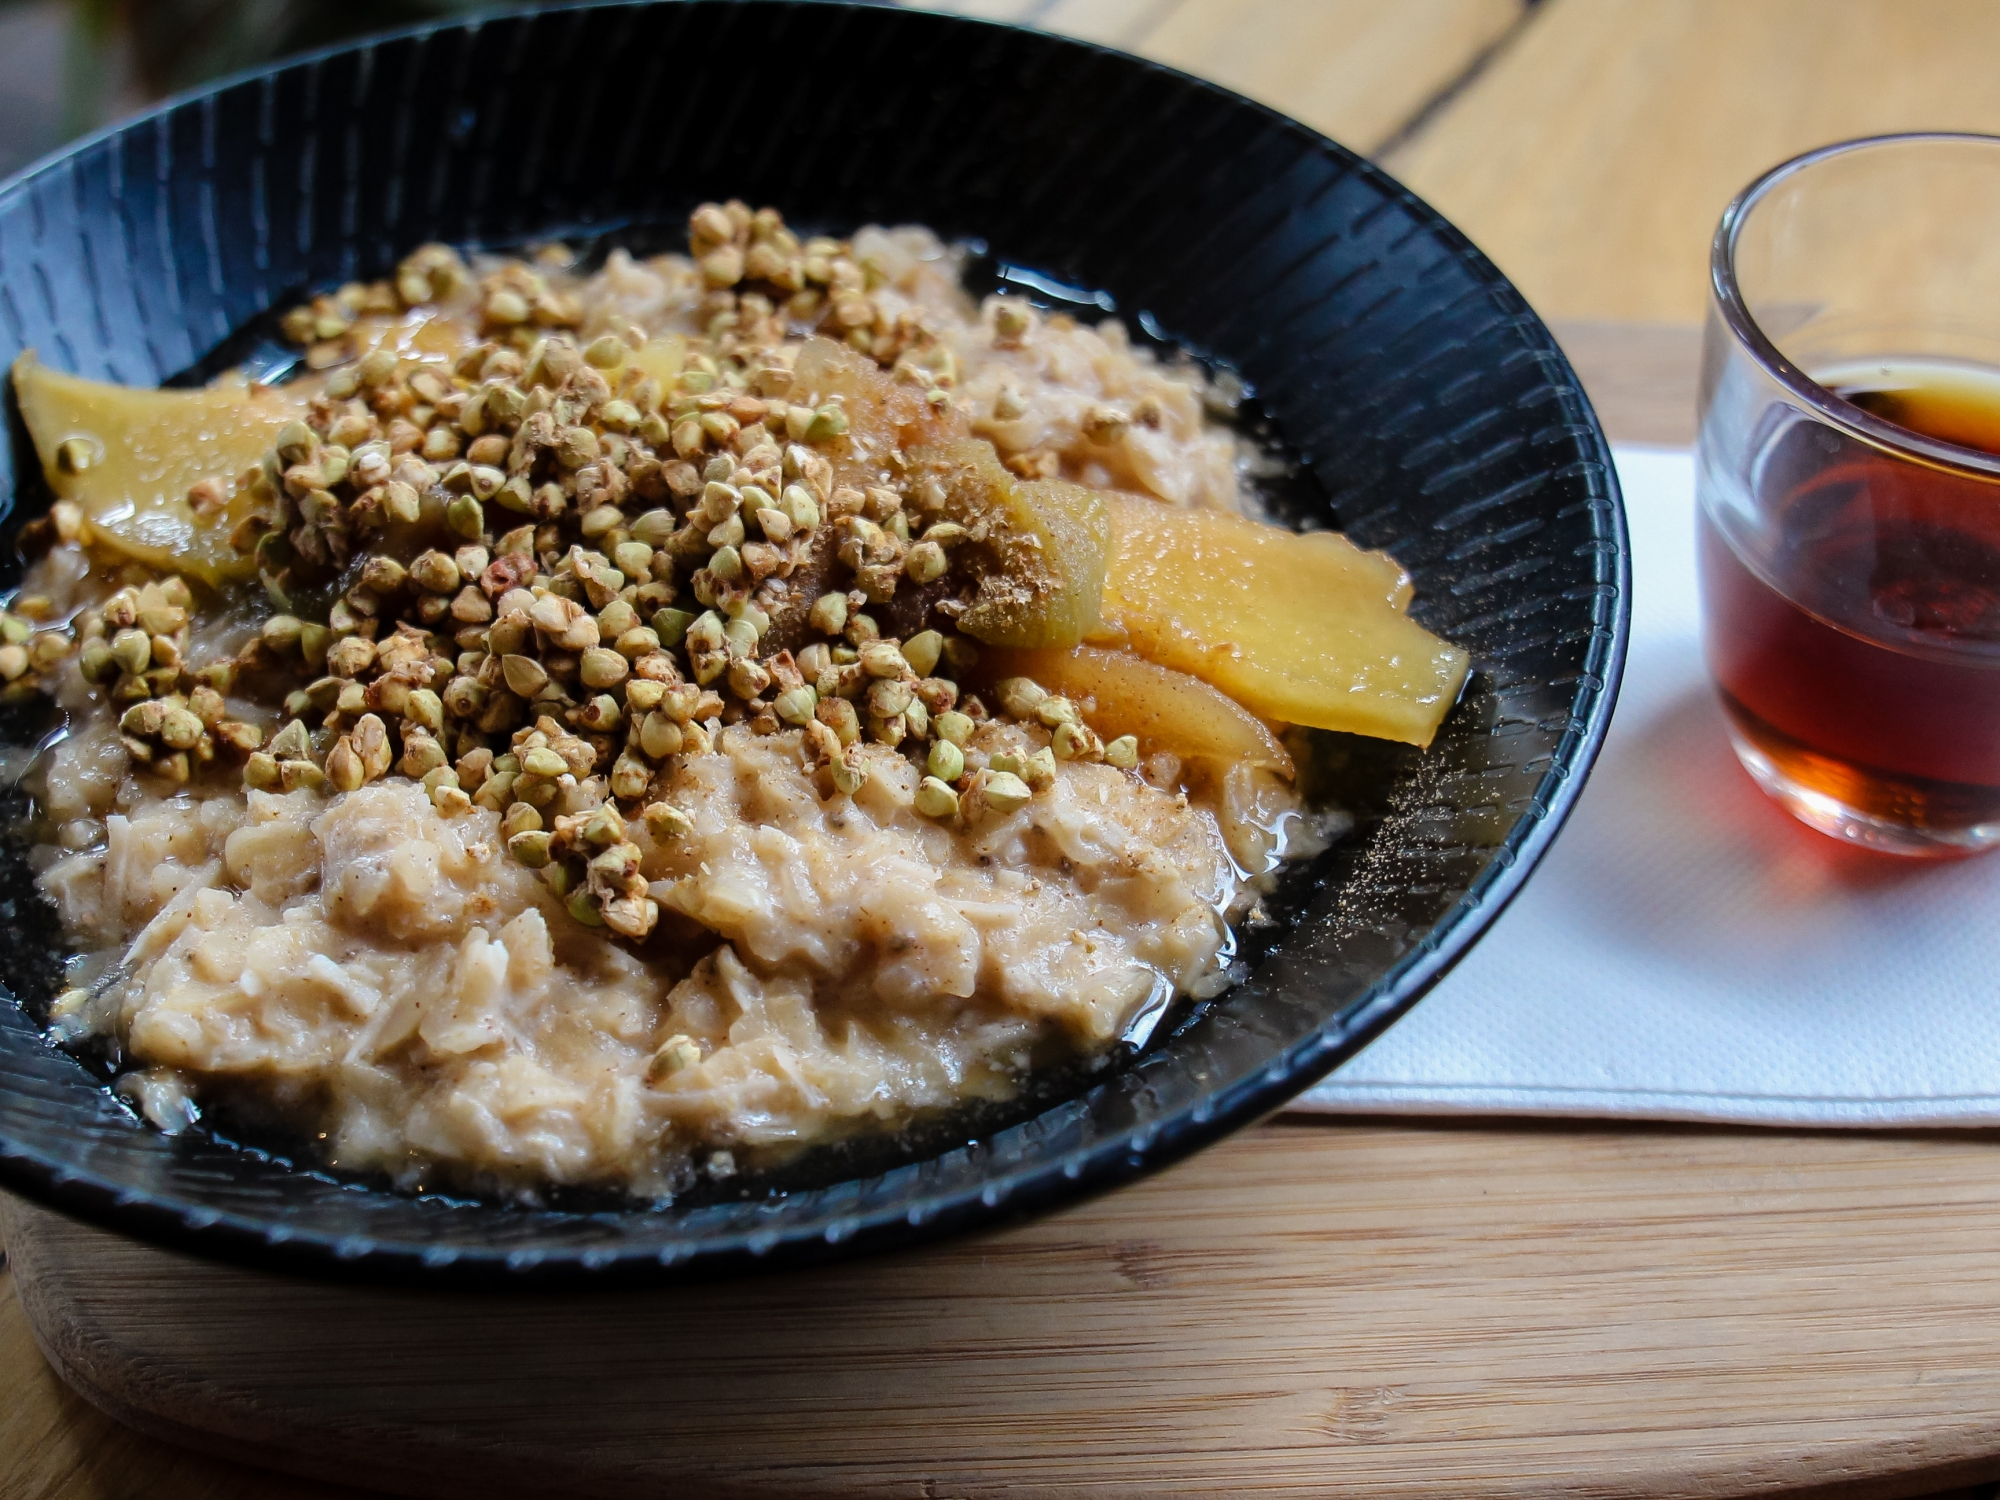 Deadman Espresso South Melbourne Porridge (1 of 1)